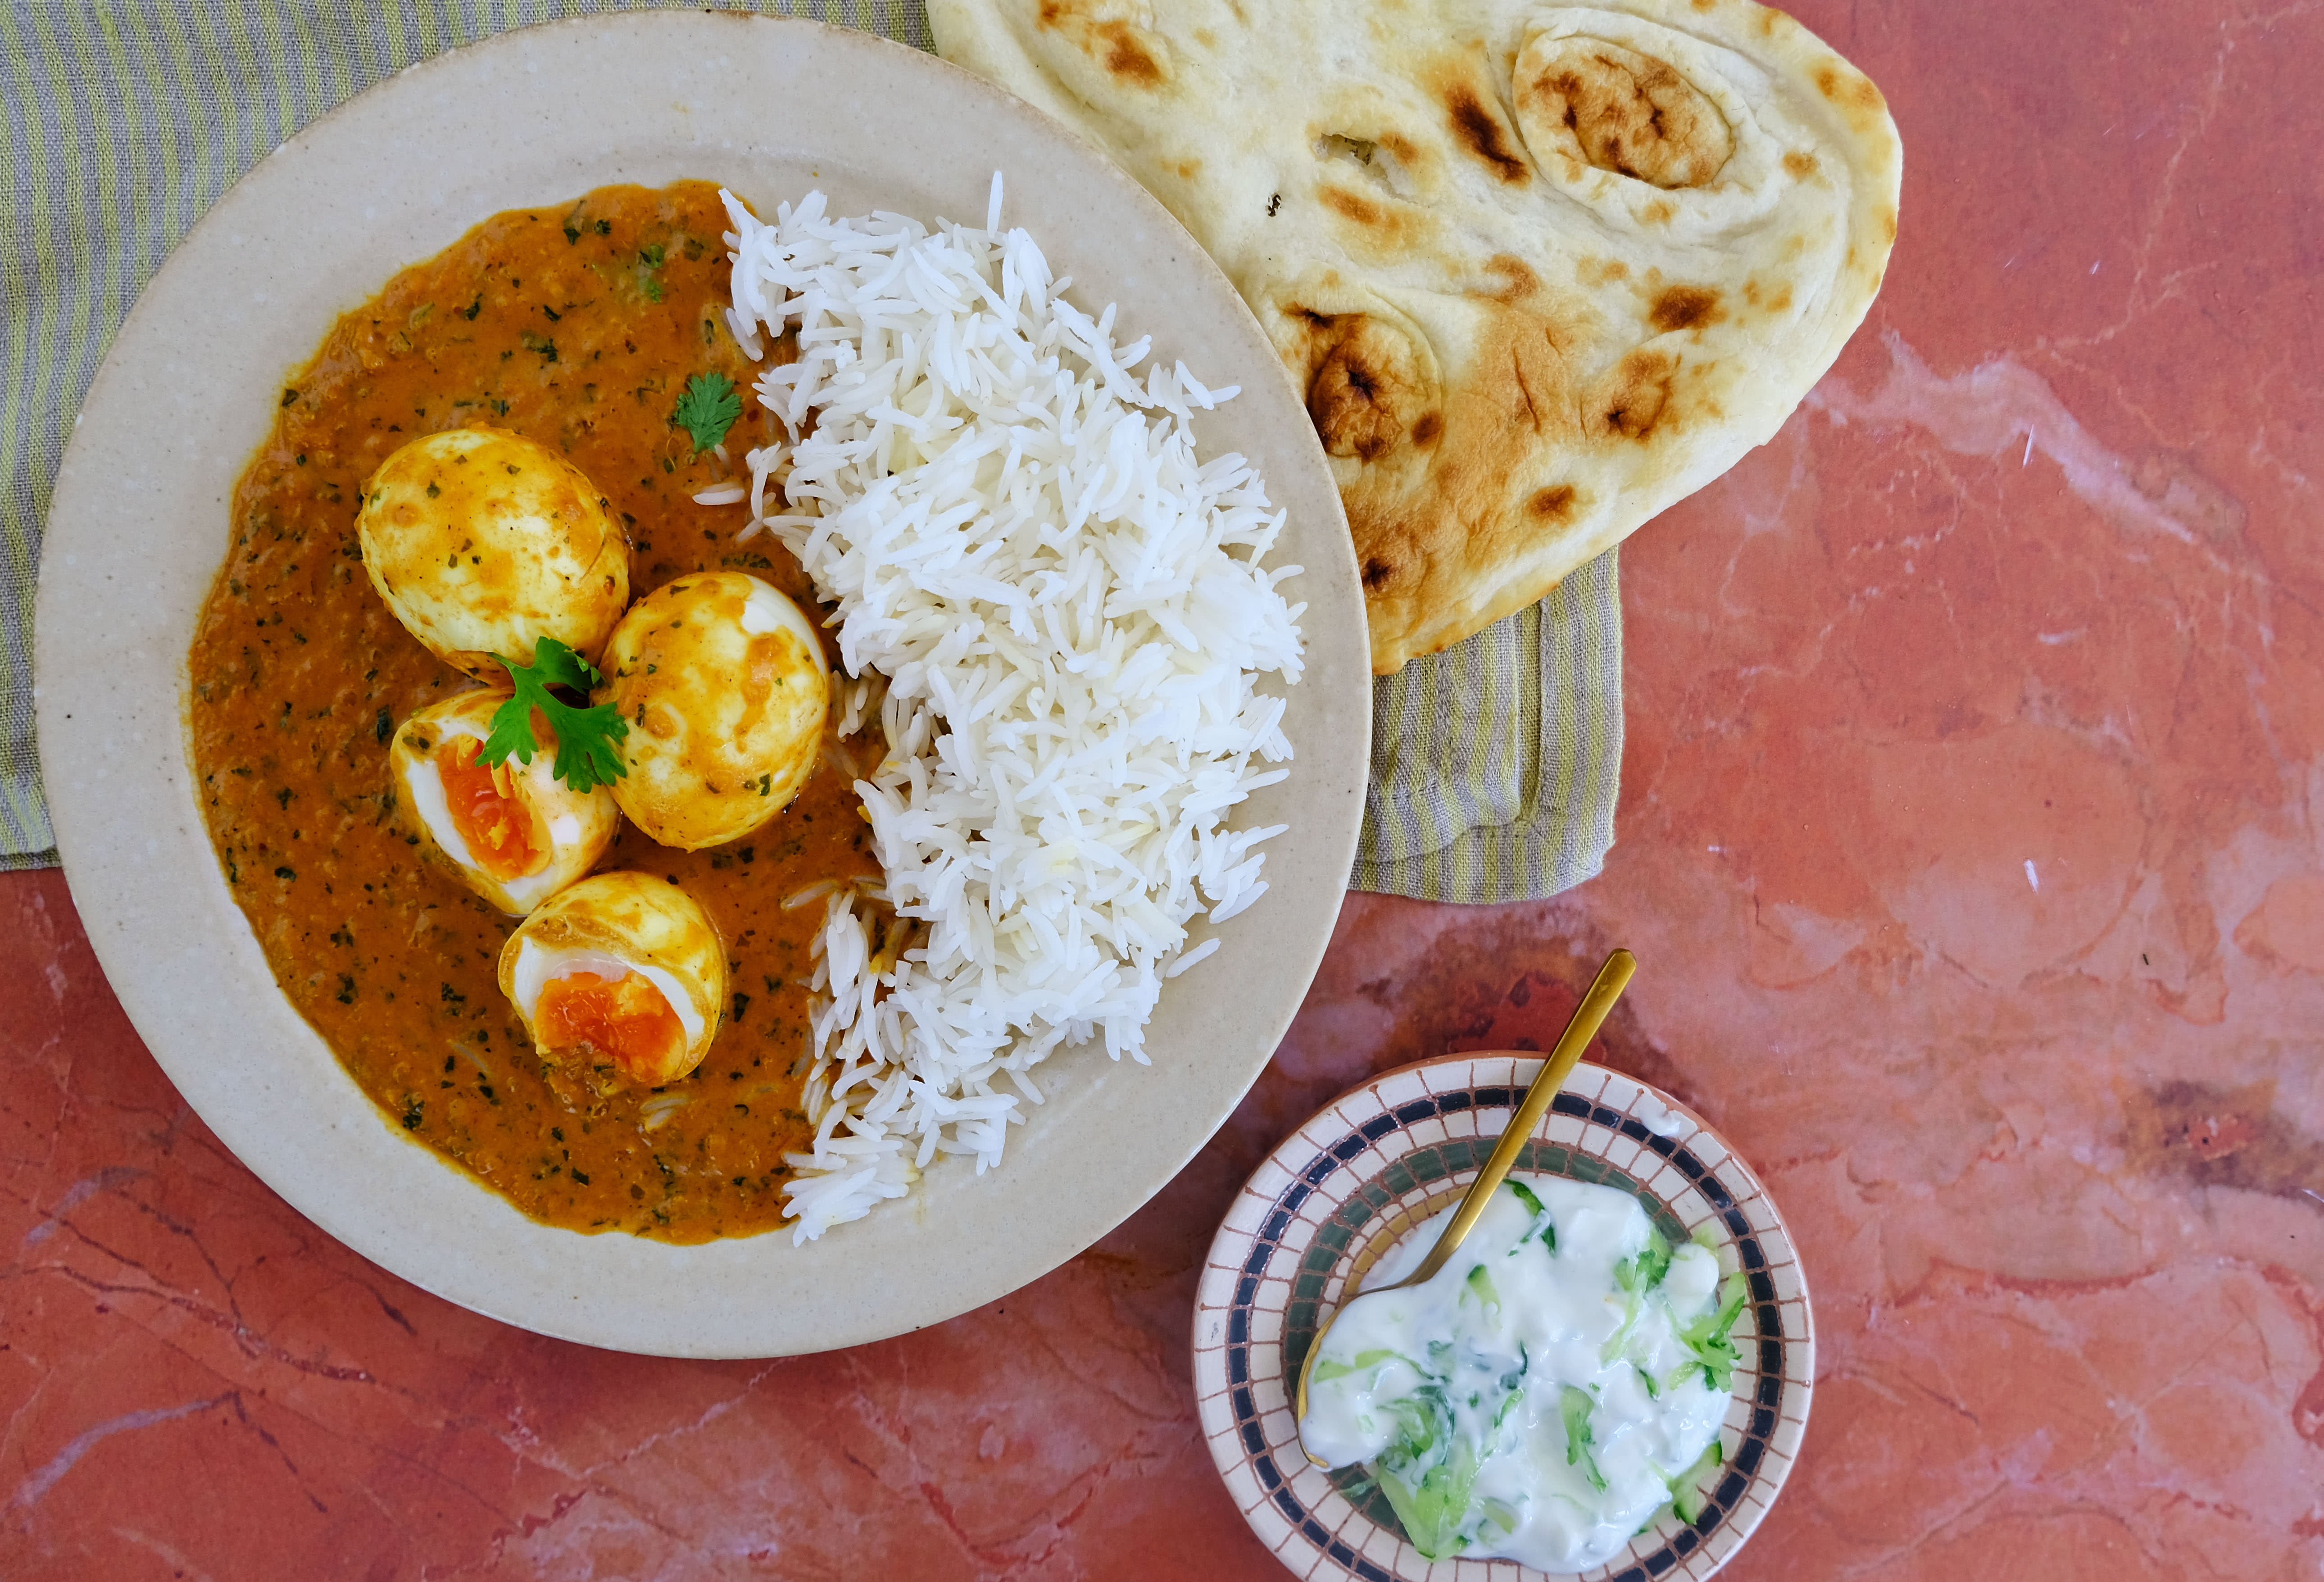 Spicy Egg Curry with Basmati Rice, Naan and Cucumber Raita